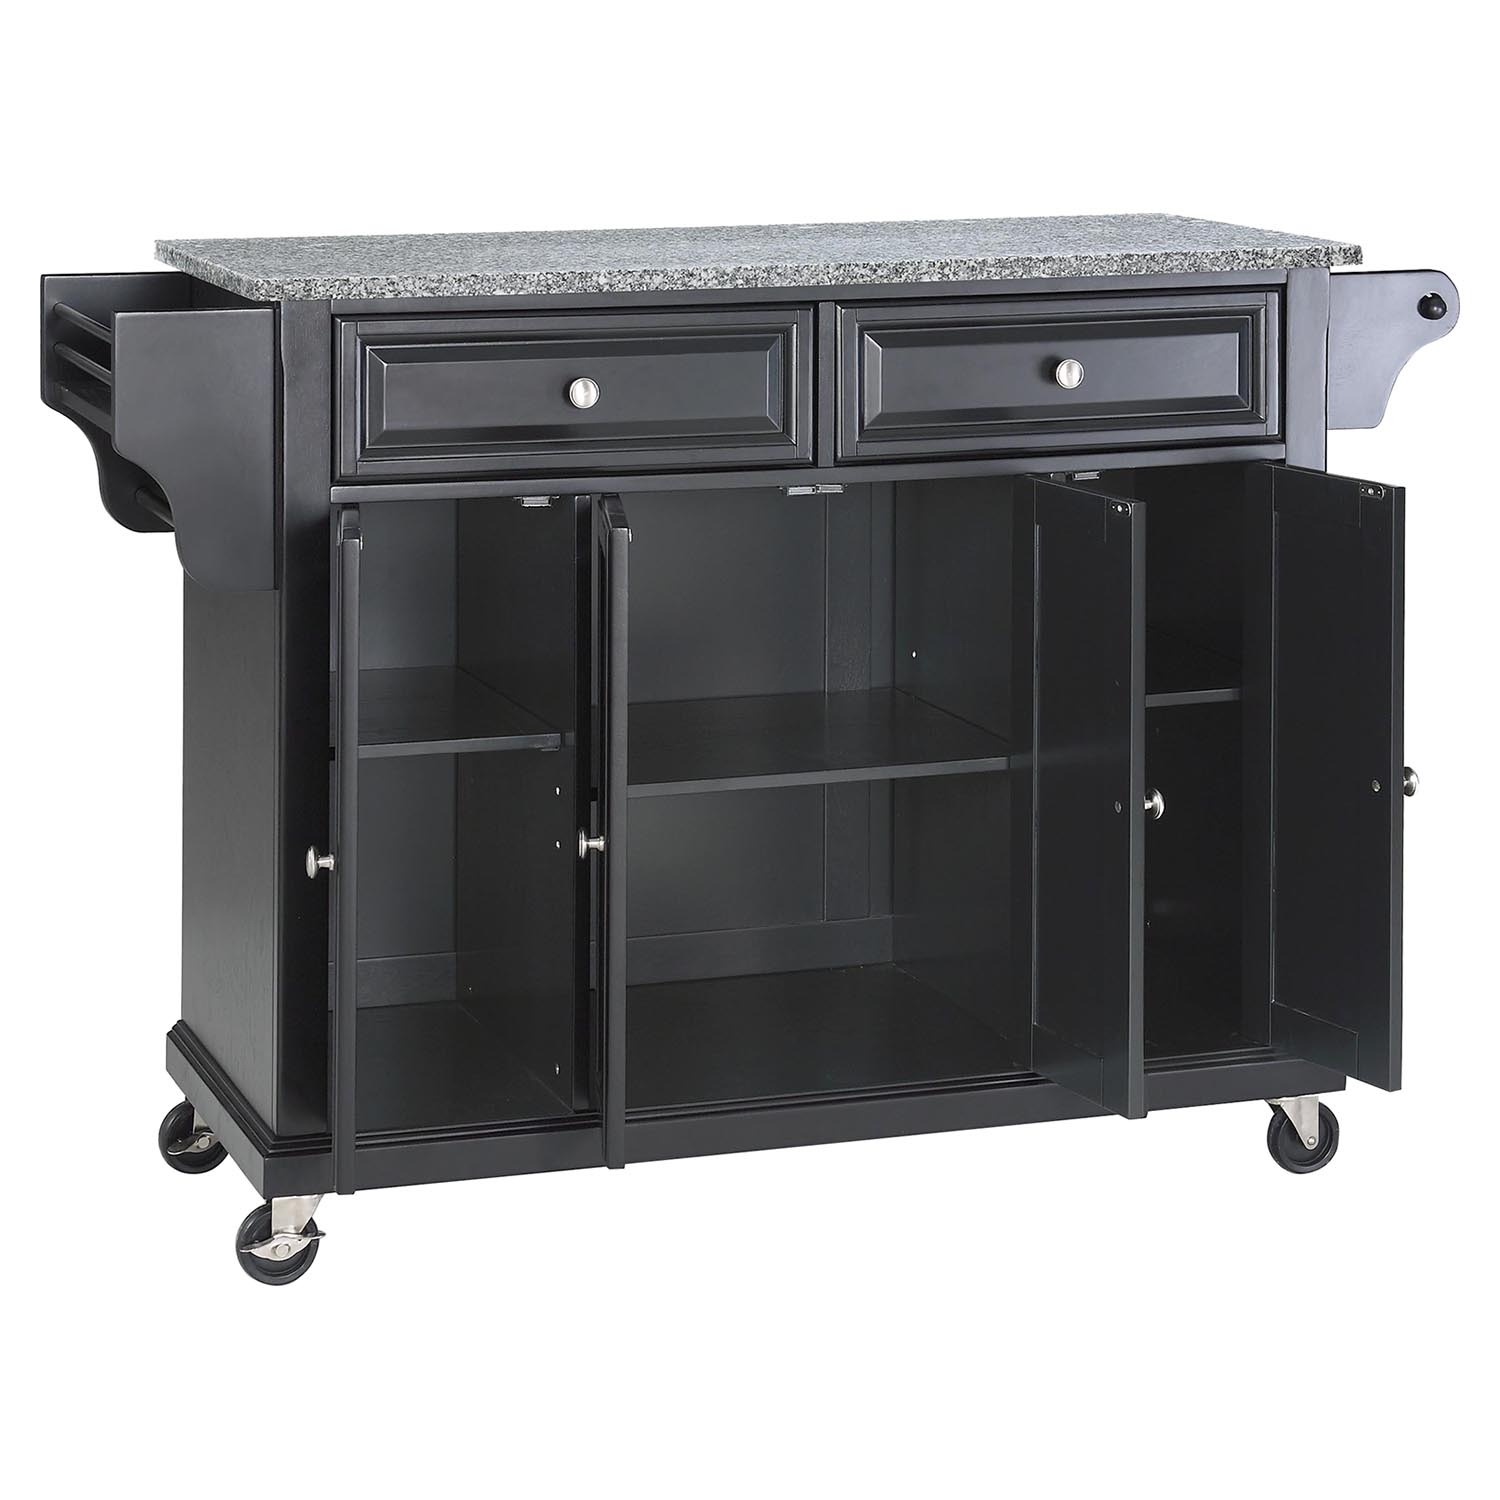 Solid Granite Top Kitchen Cart Island Casters Black